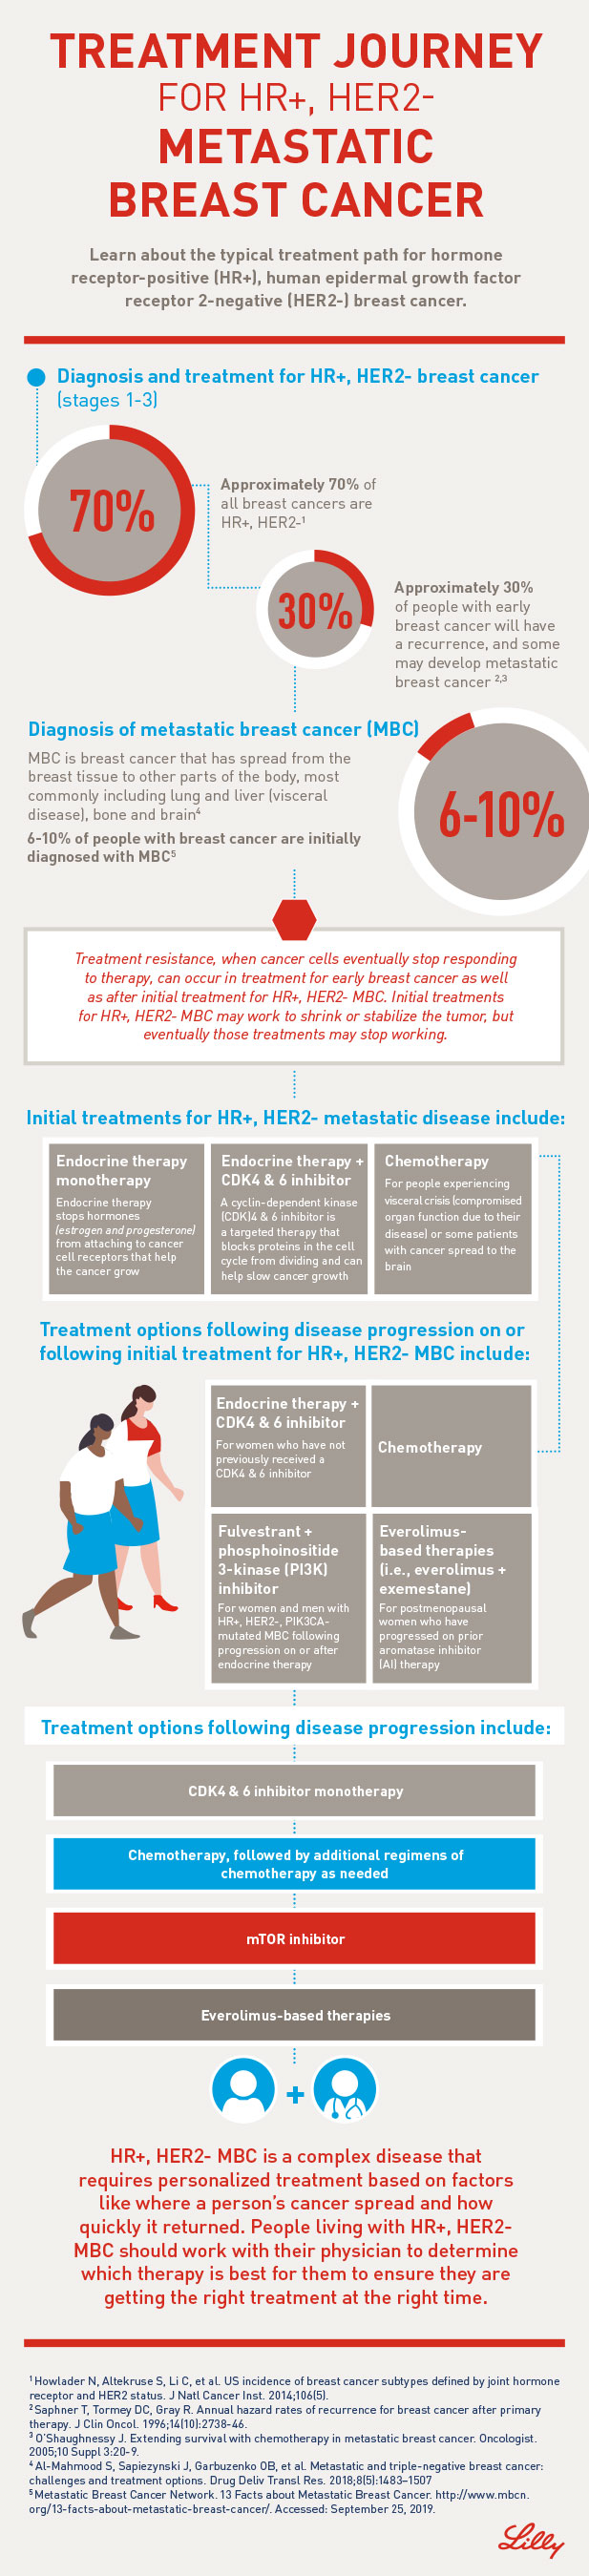 Treatment Journey for HR+, HER2- Metastatic Breast Cancer